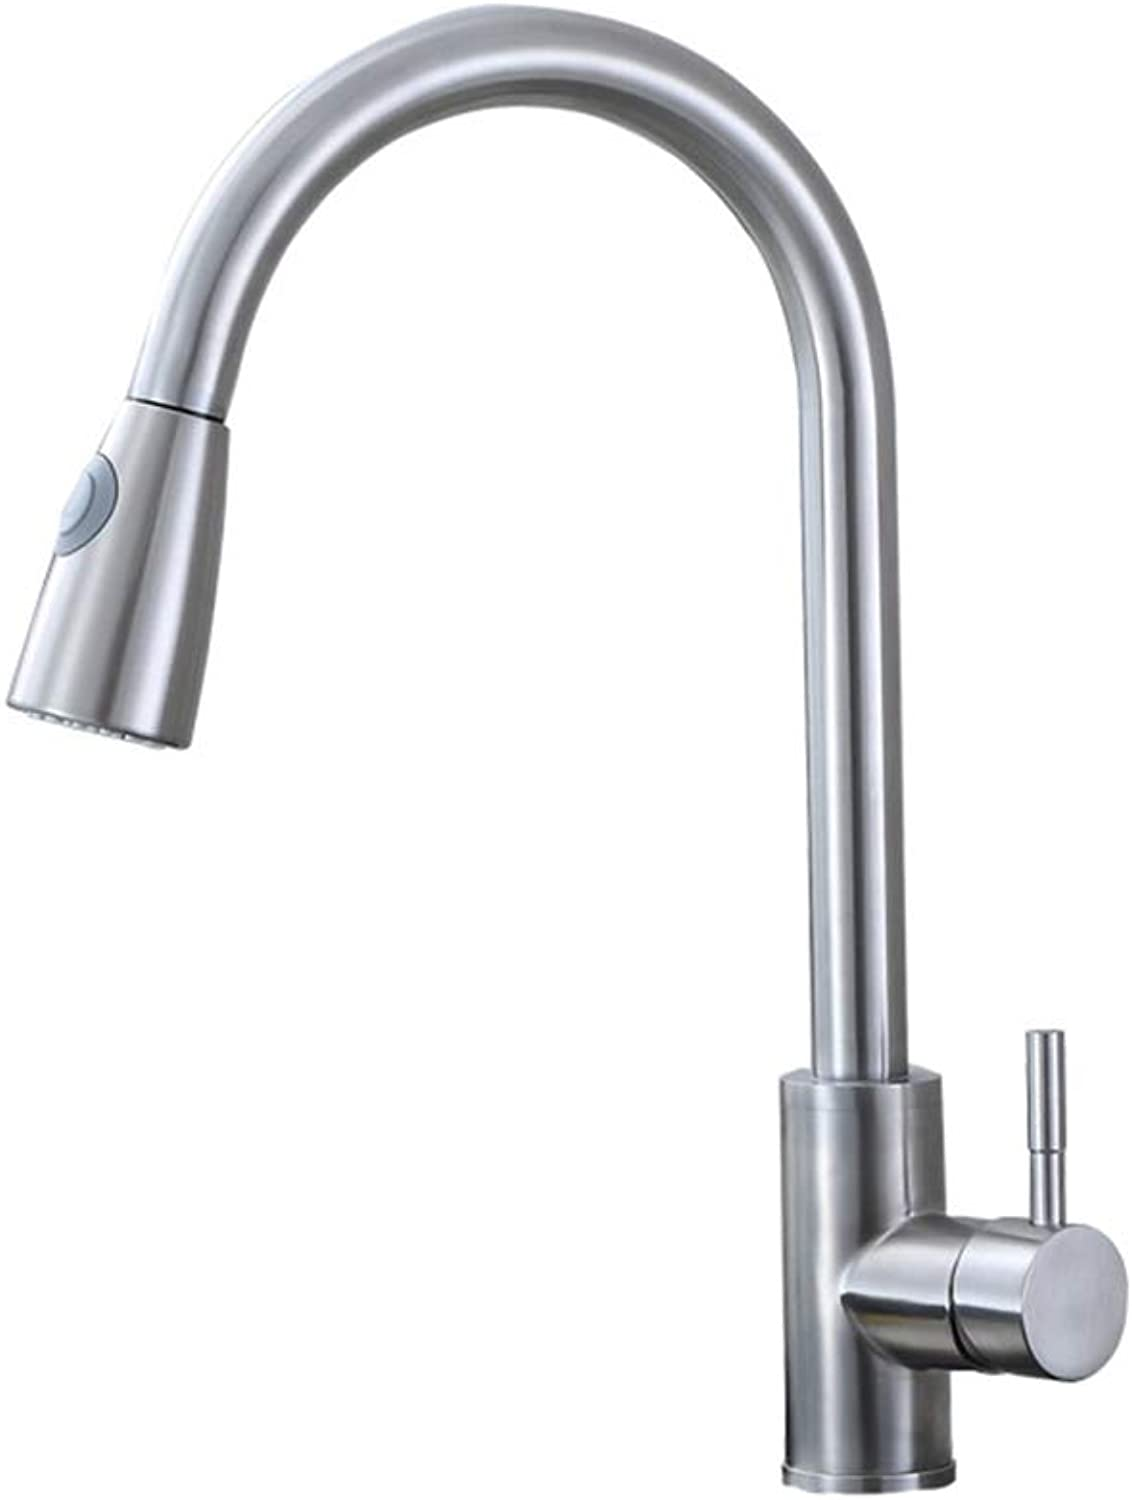 MCCW Kitchen faucet stainless steel pullable structure with cold water and hot water for home kitchen